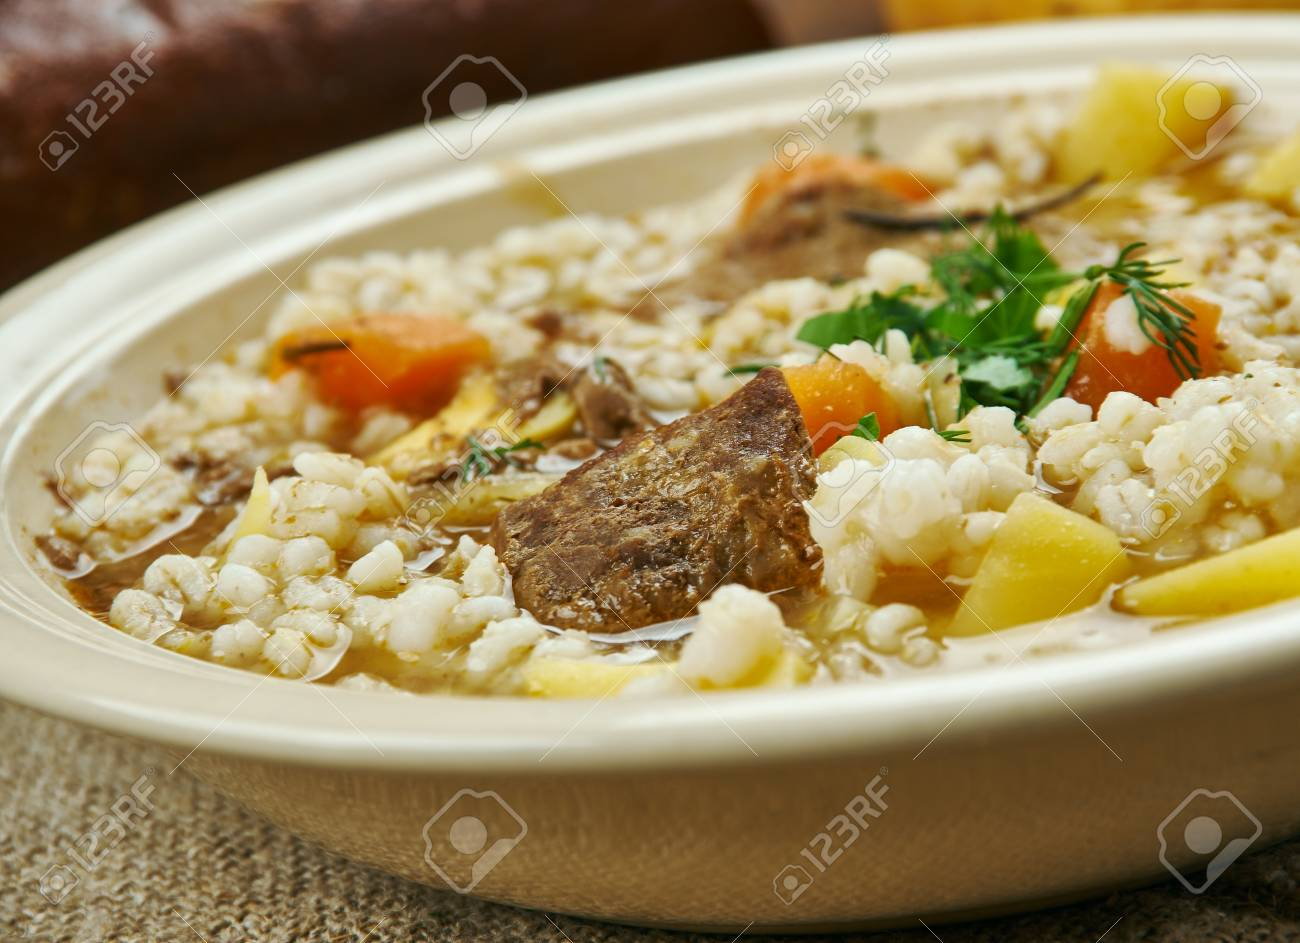 Scotch Broth Illing Soup Barley Stewing Or Braising Cuts Of Lamb